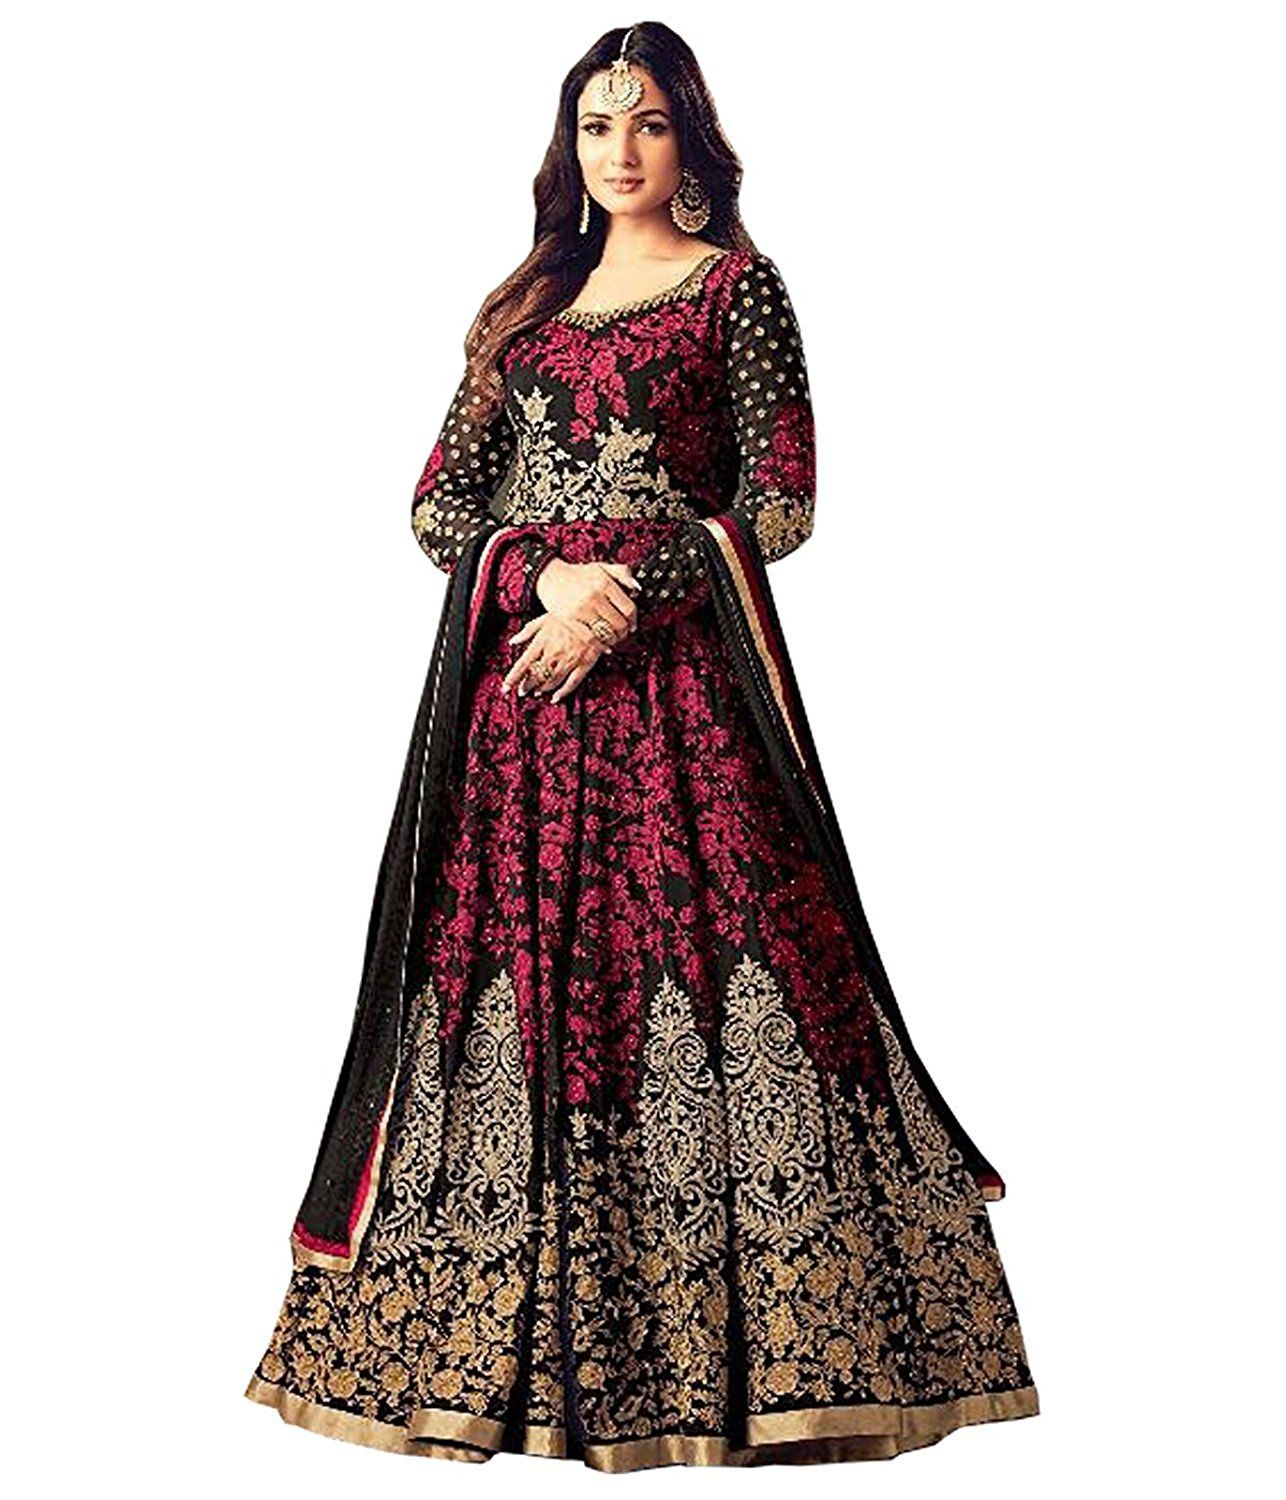 85332c1bc6 salwar suit material for women party wear lehenga choli for wedding  function salwar suits for women gowns for girls party wear 18 years latest  sarees ...